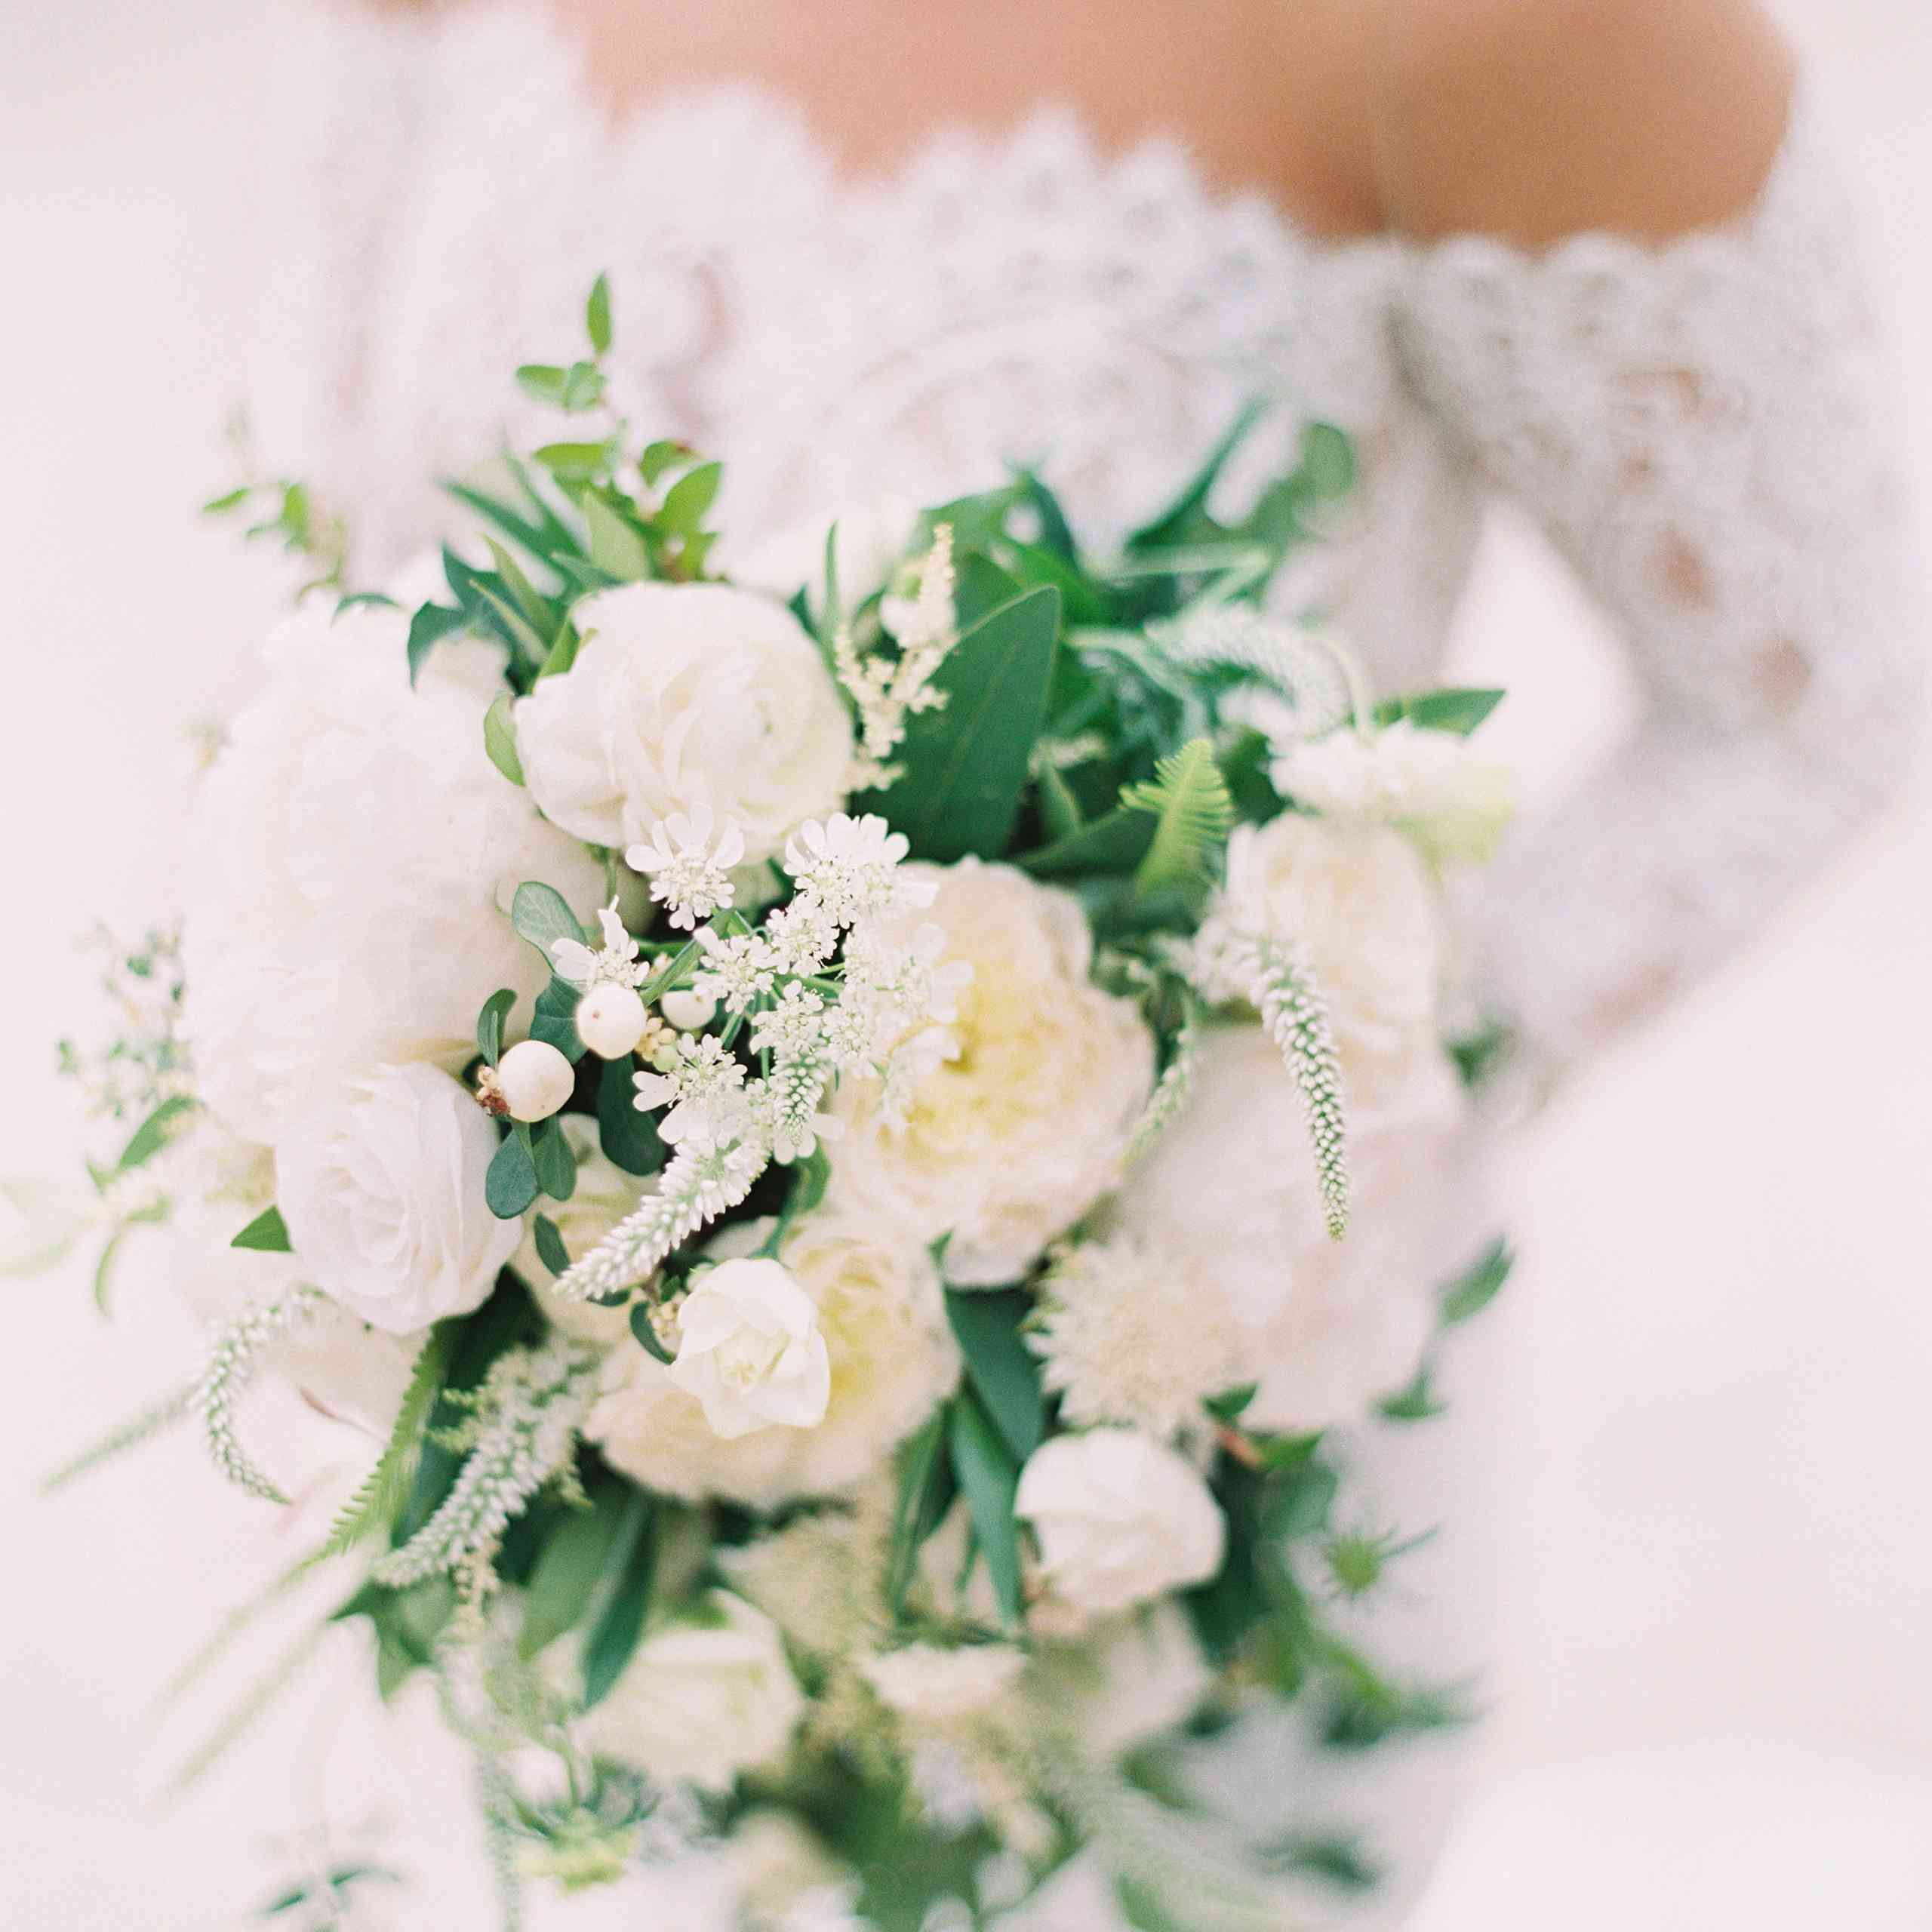 <p>A bride holding a green and white bouquet.</p>